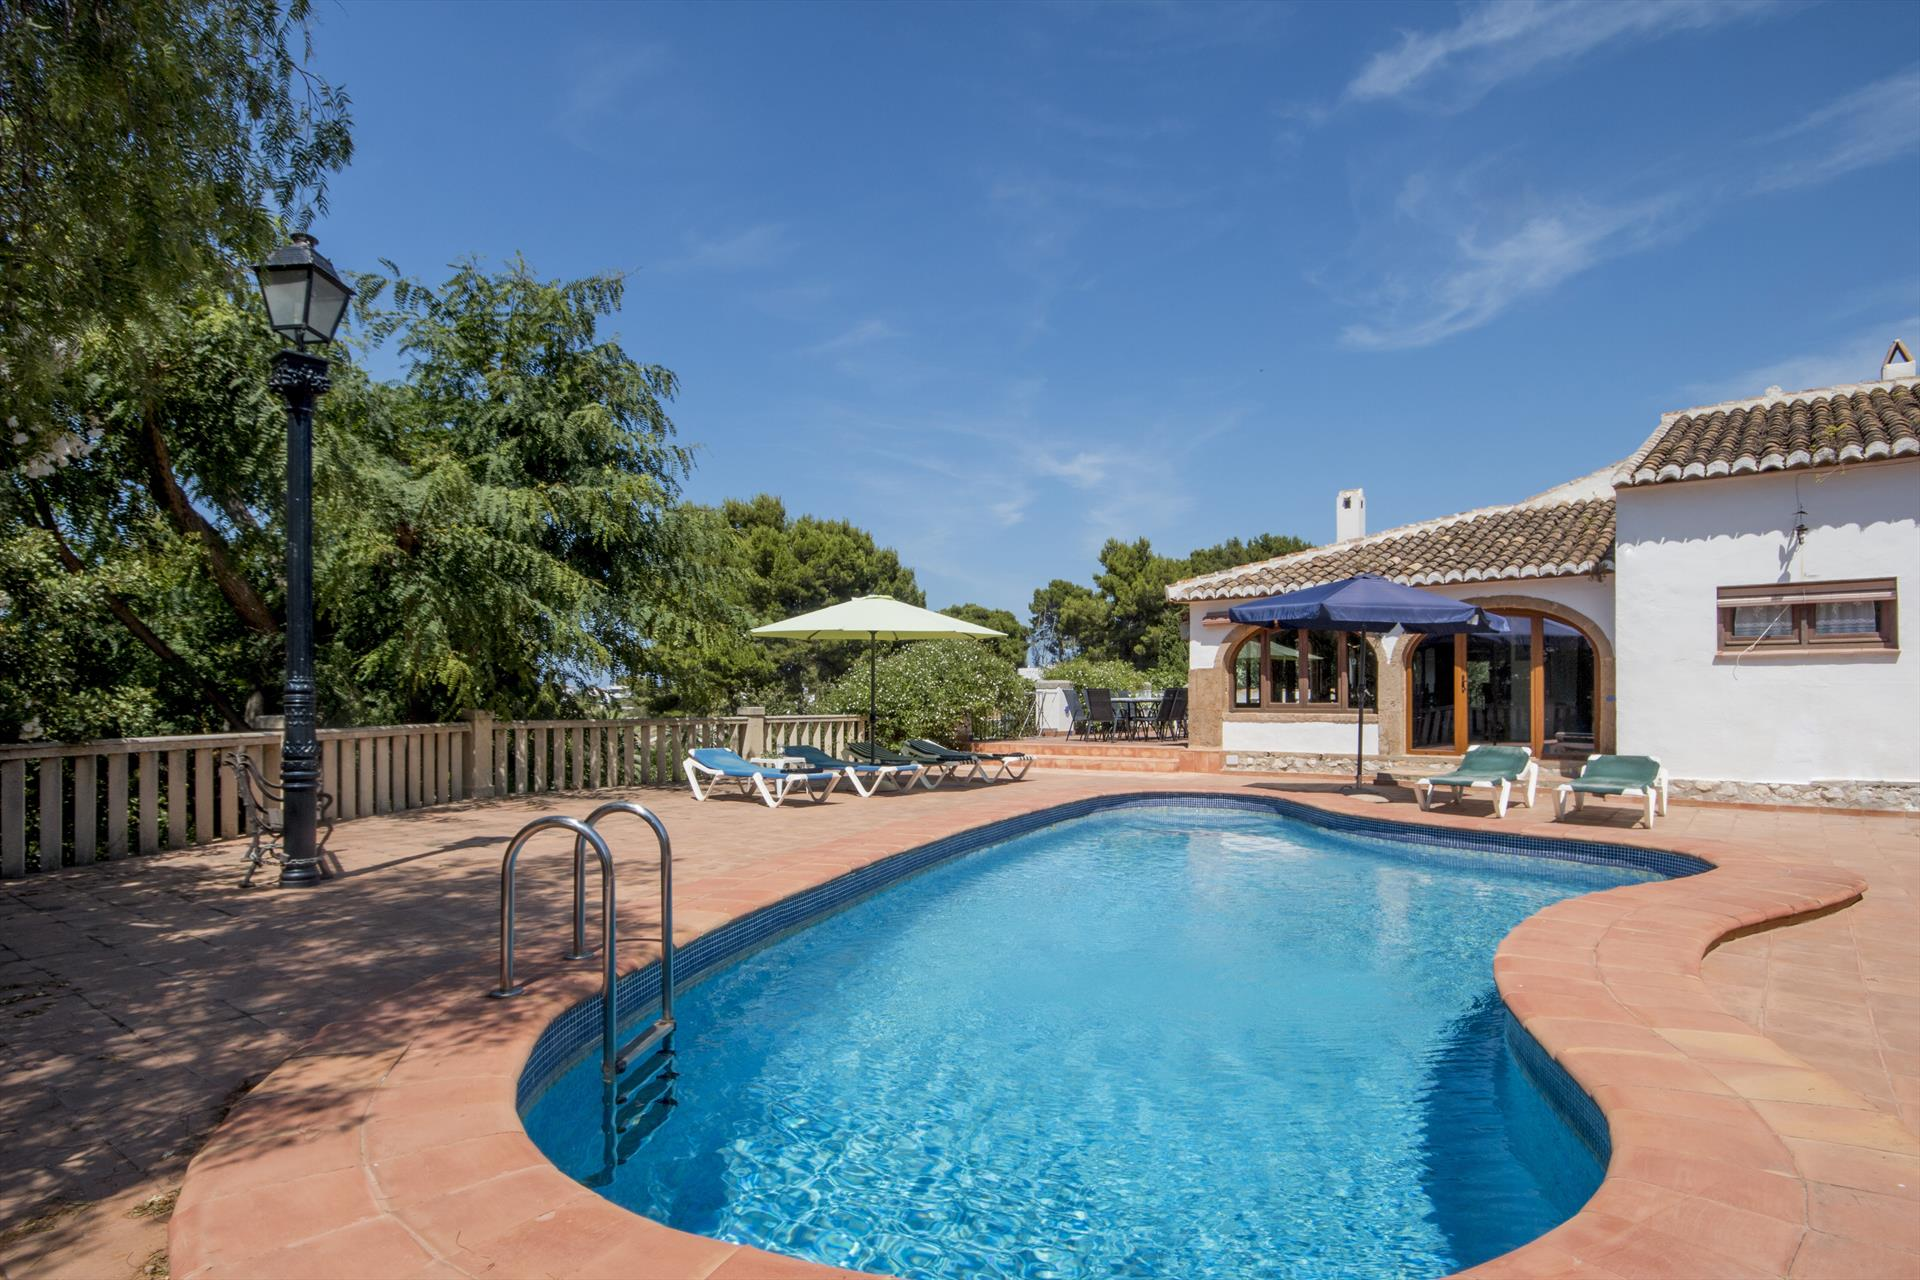 Alison 6, Large and classic villa  with private pool in Javea, on the Costa Blanca, Spain for 6 persons.....